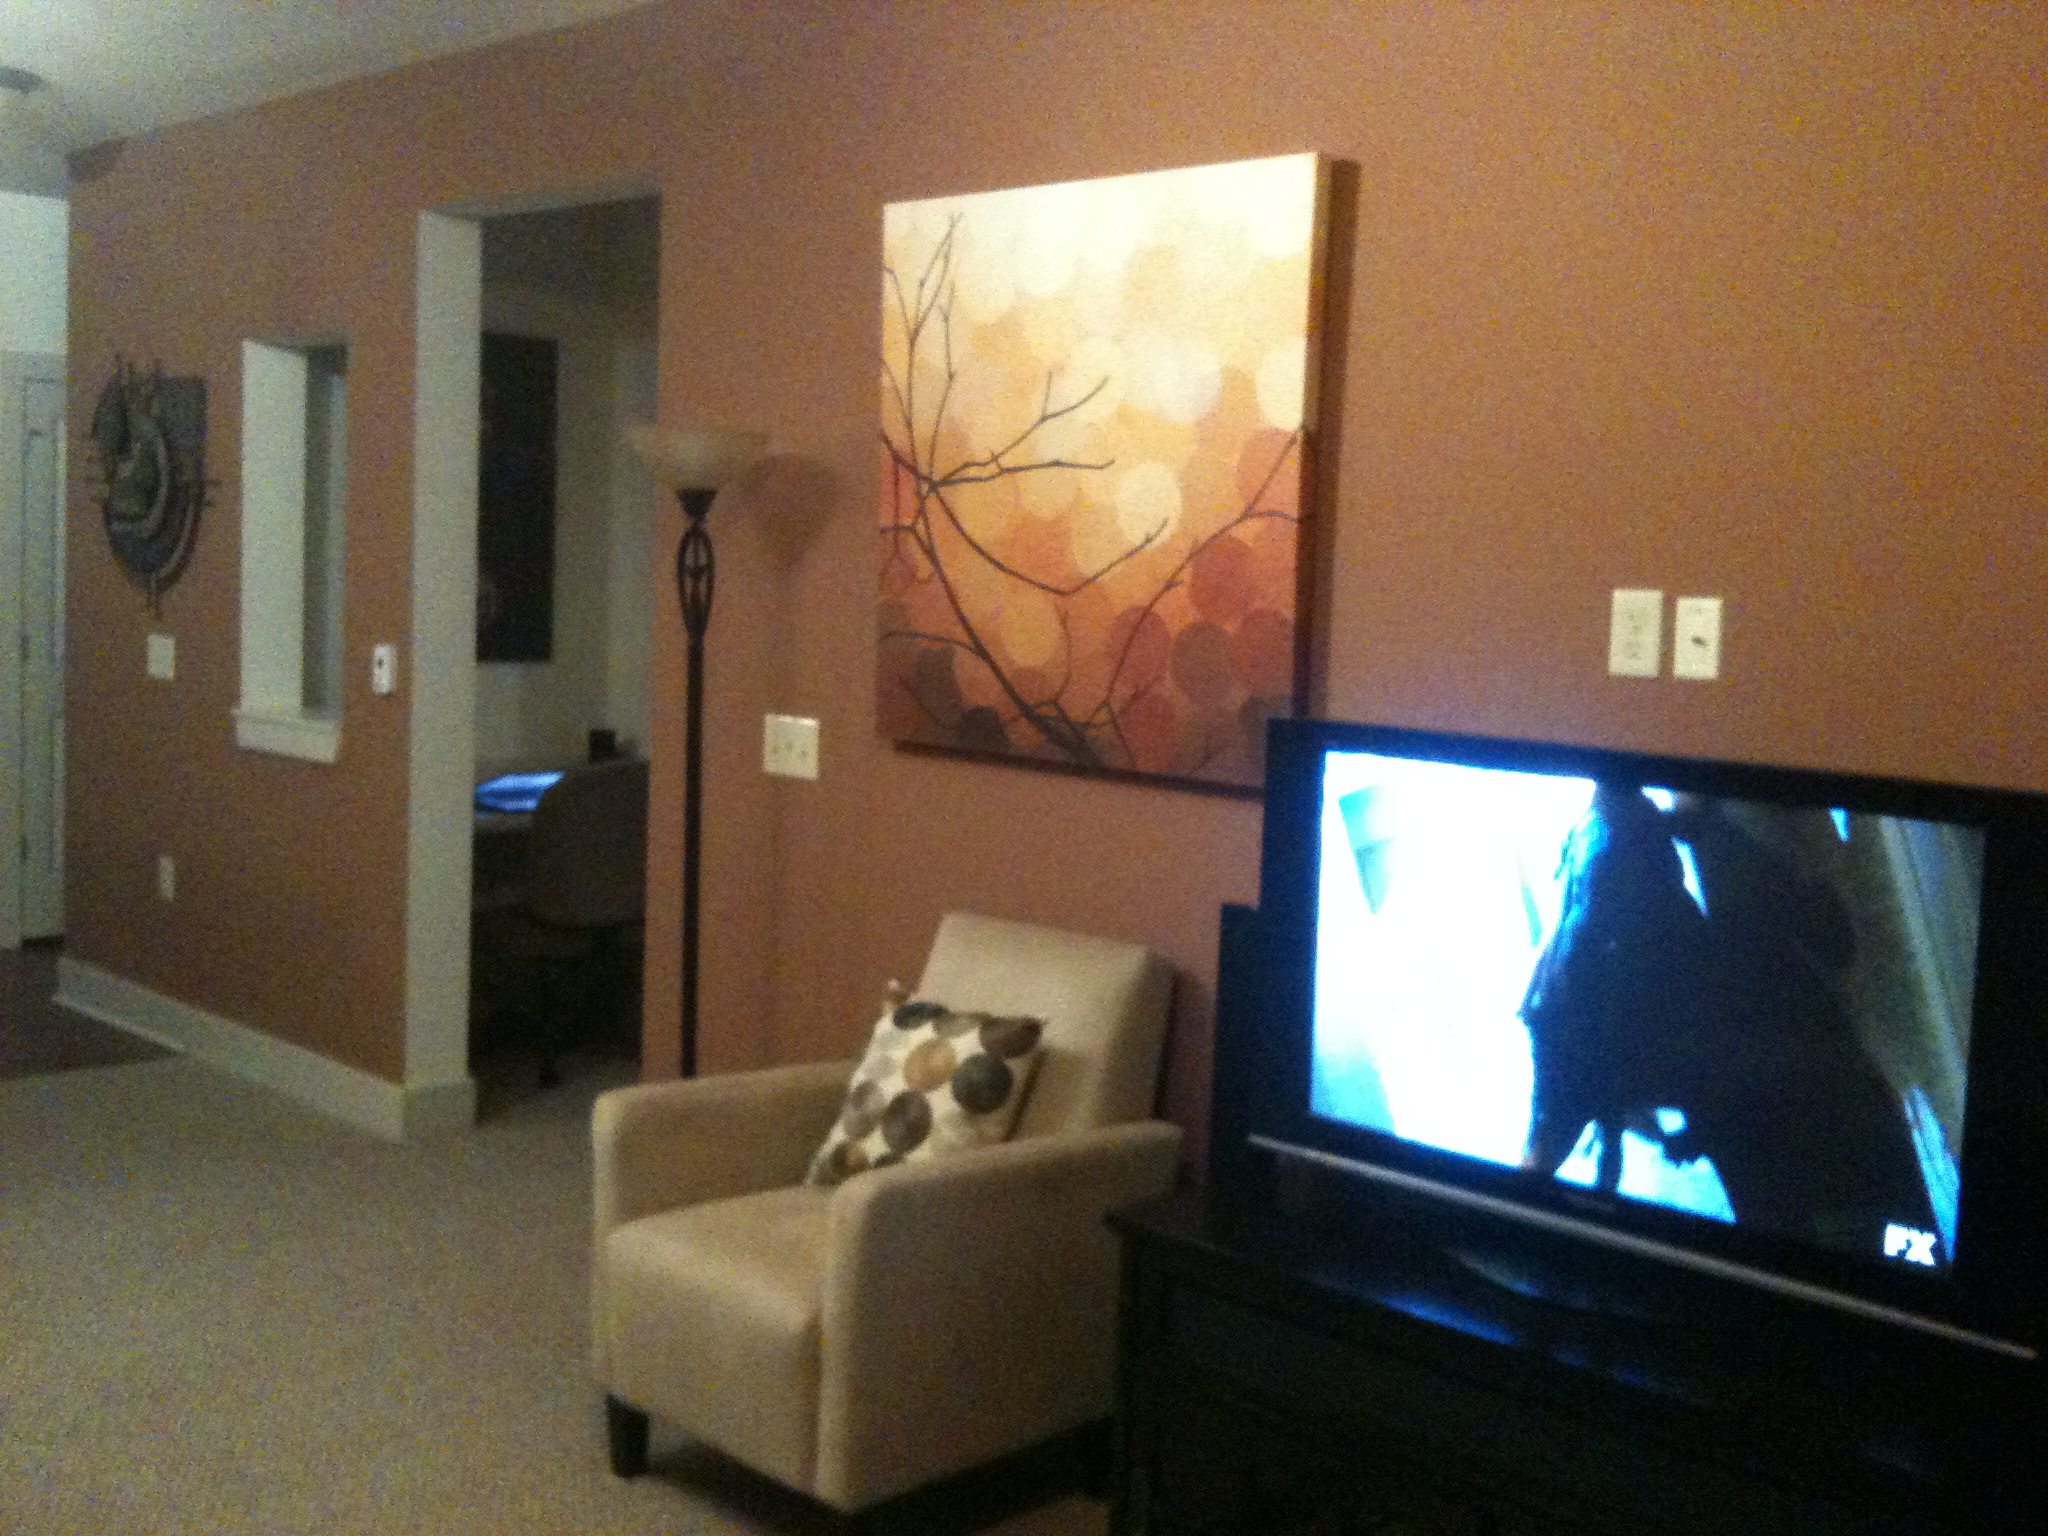 For Painting A Living Room Bachelor Needs Advice On Living Room Paint Color Home Interior